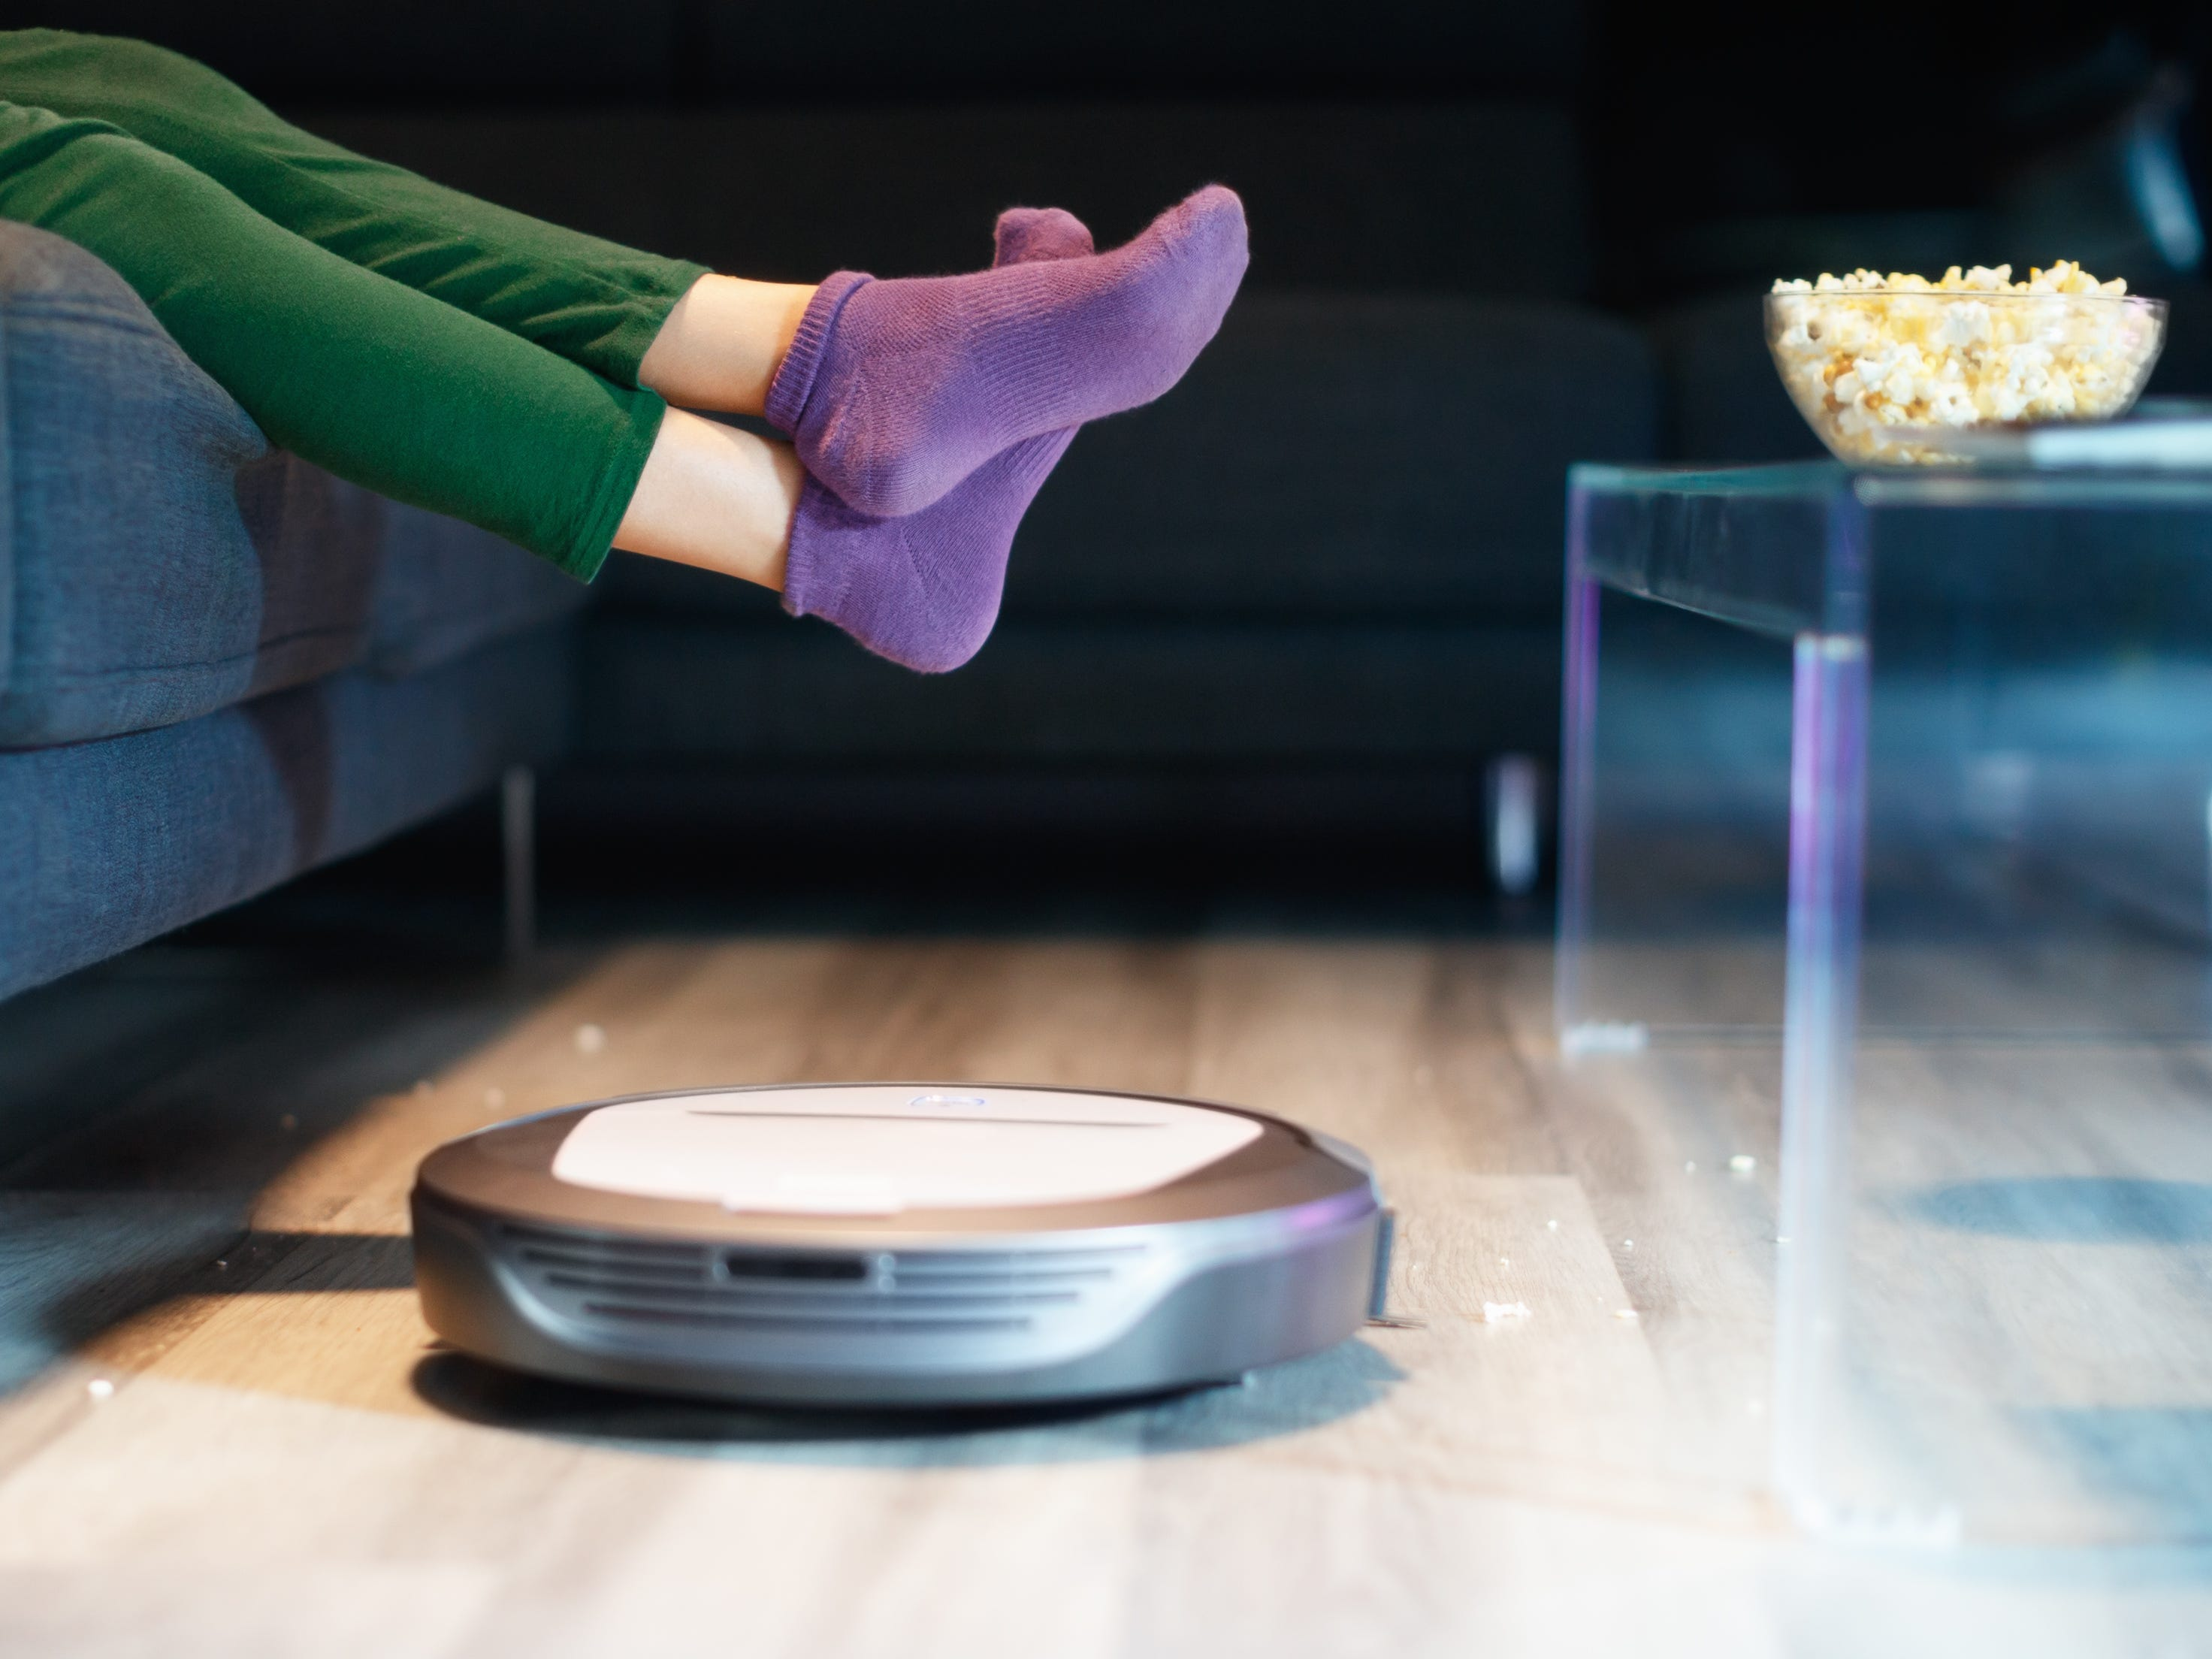 Take a load off!  Enjoy fall with family & friends while this robot vacuum does your dirty work. Enter 9/11 - 10/2.